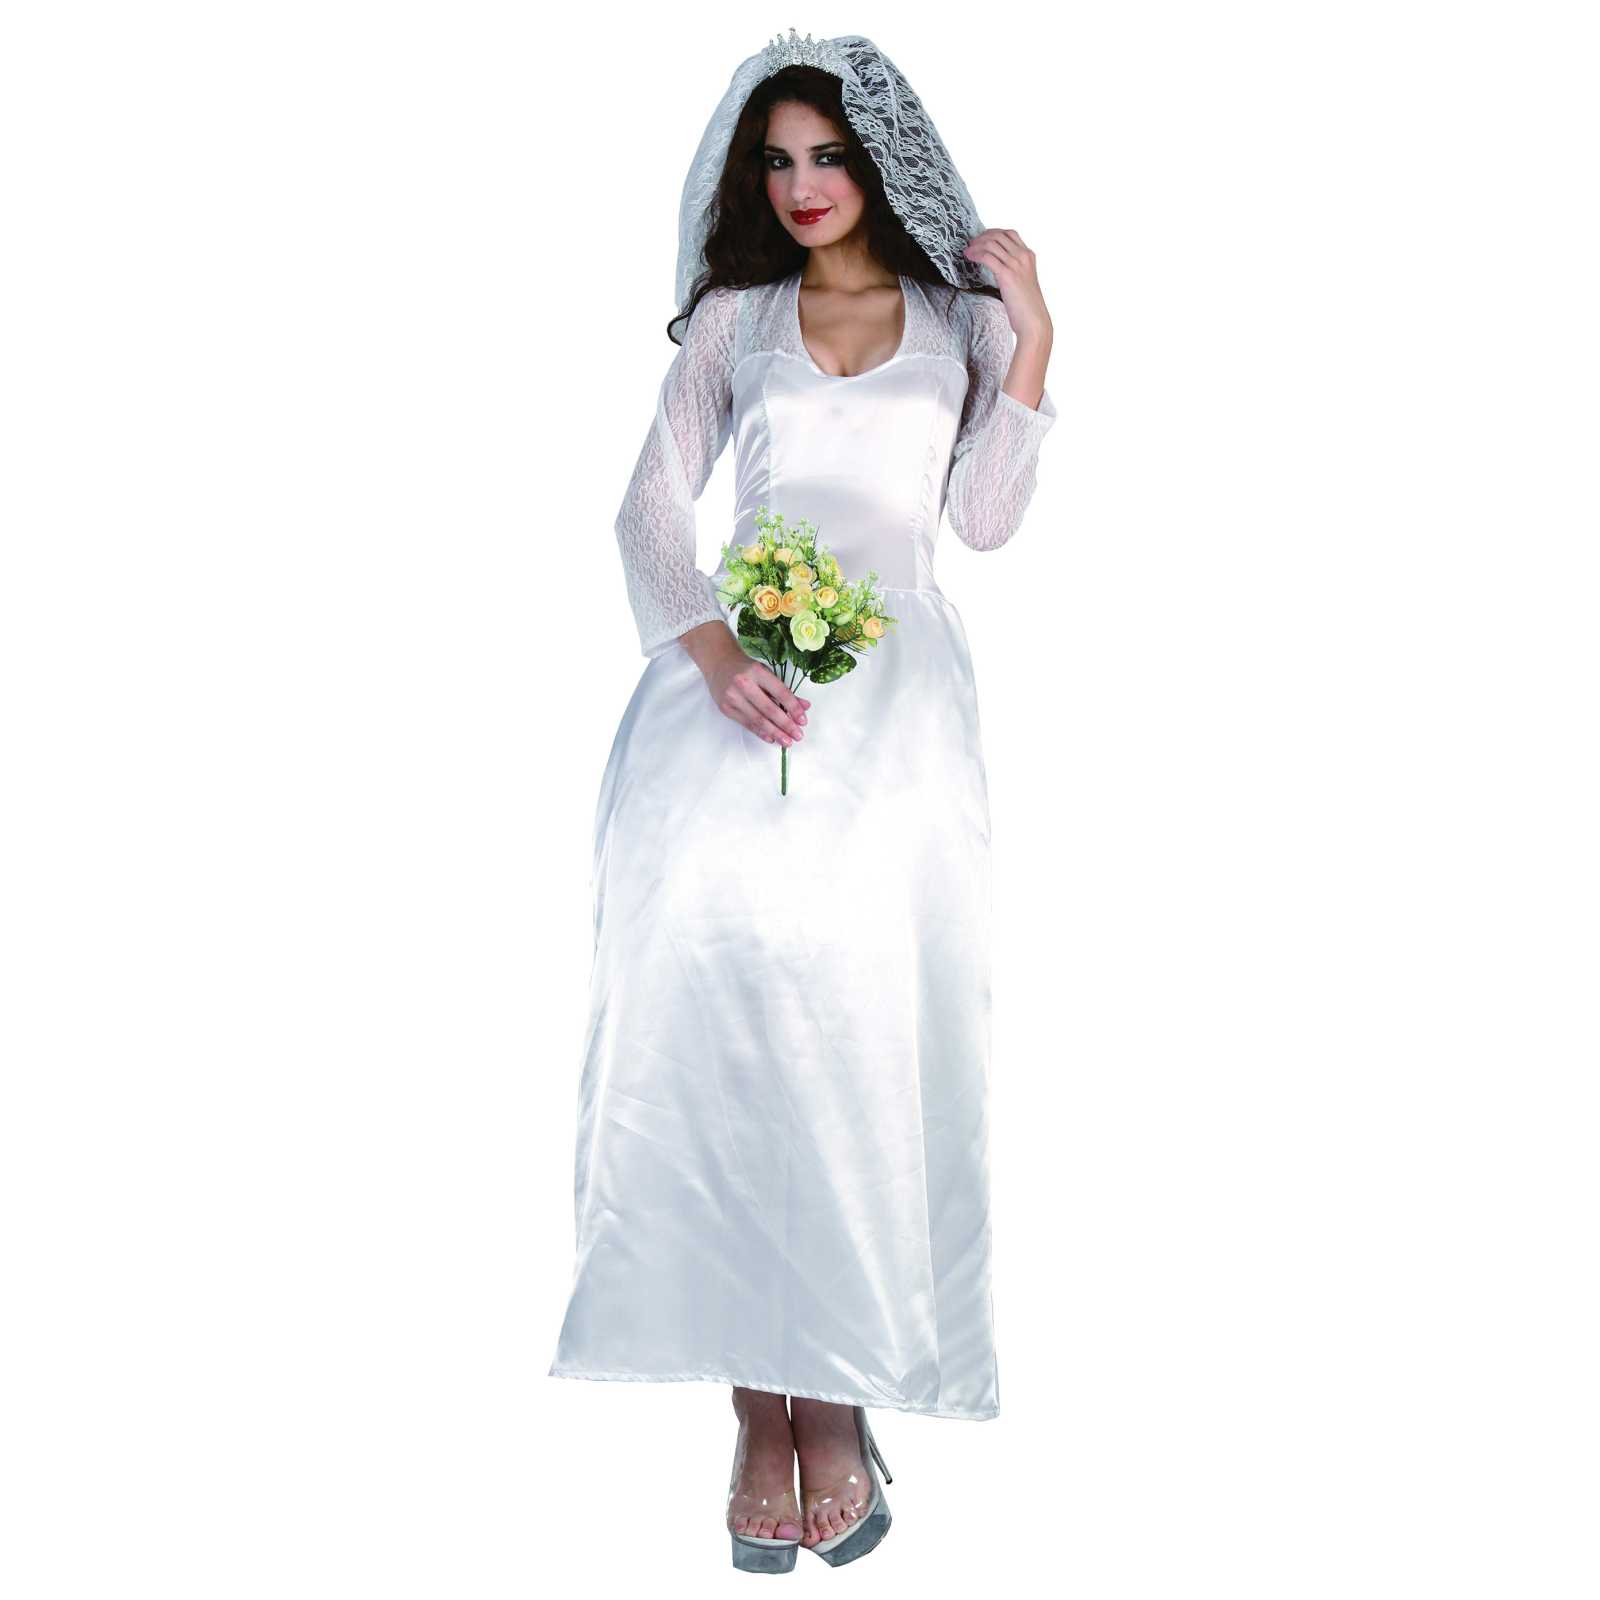 Royal Family Bride Costume Ladies Marriage Womens Party Fancy Dress Outfit